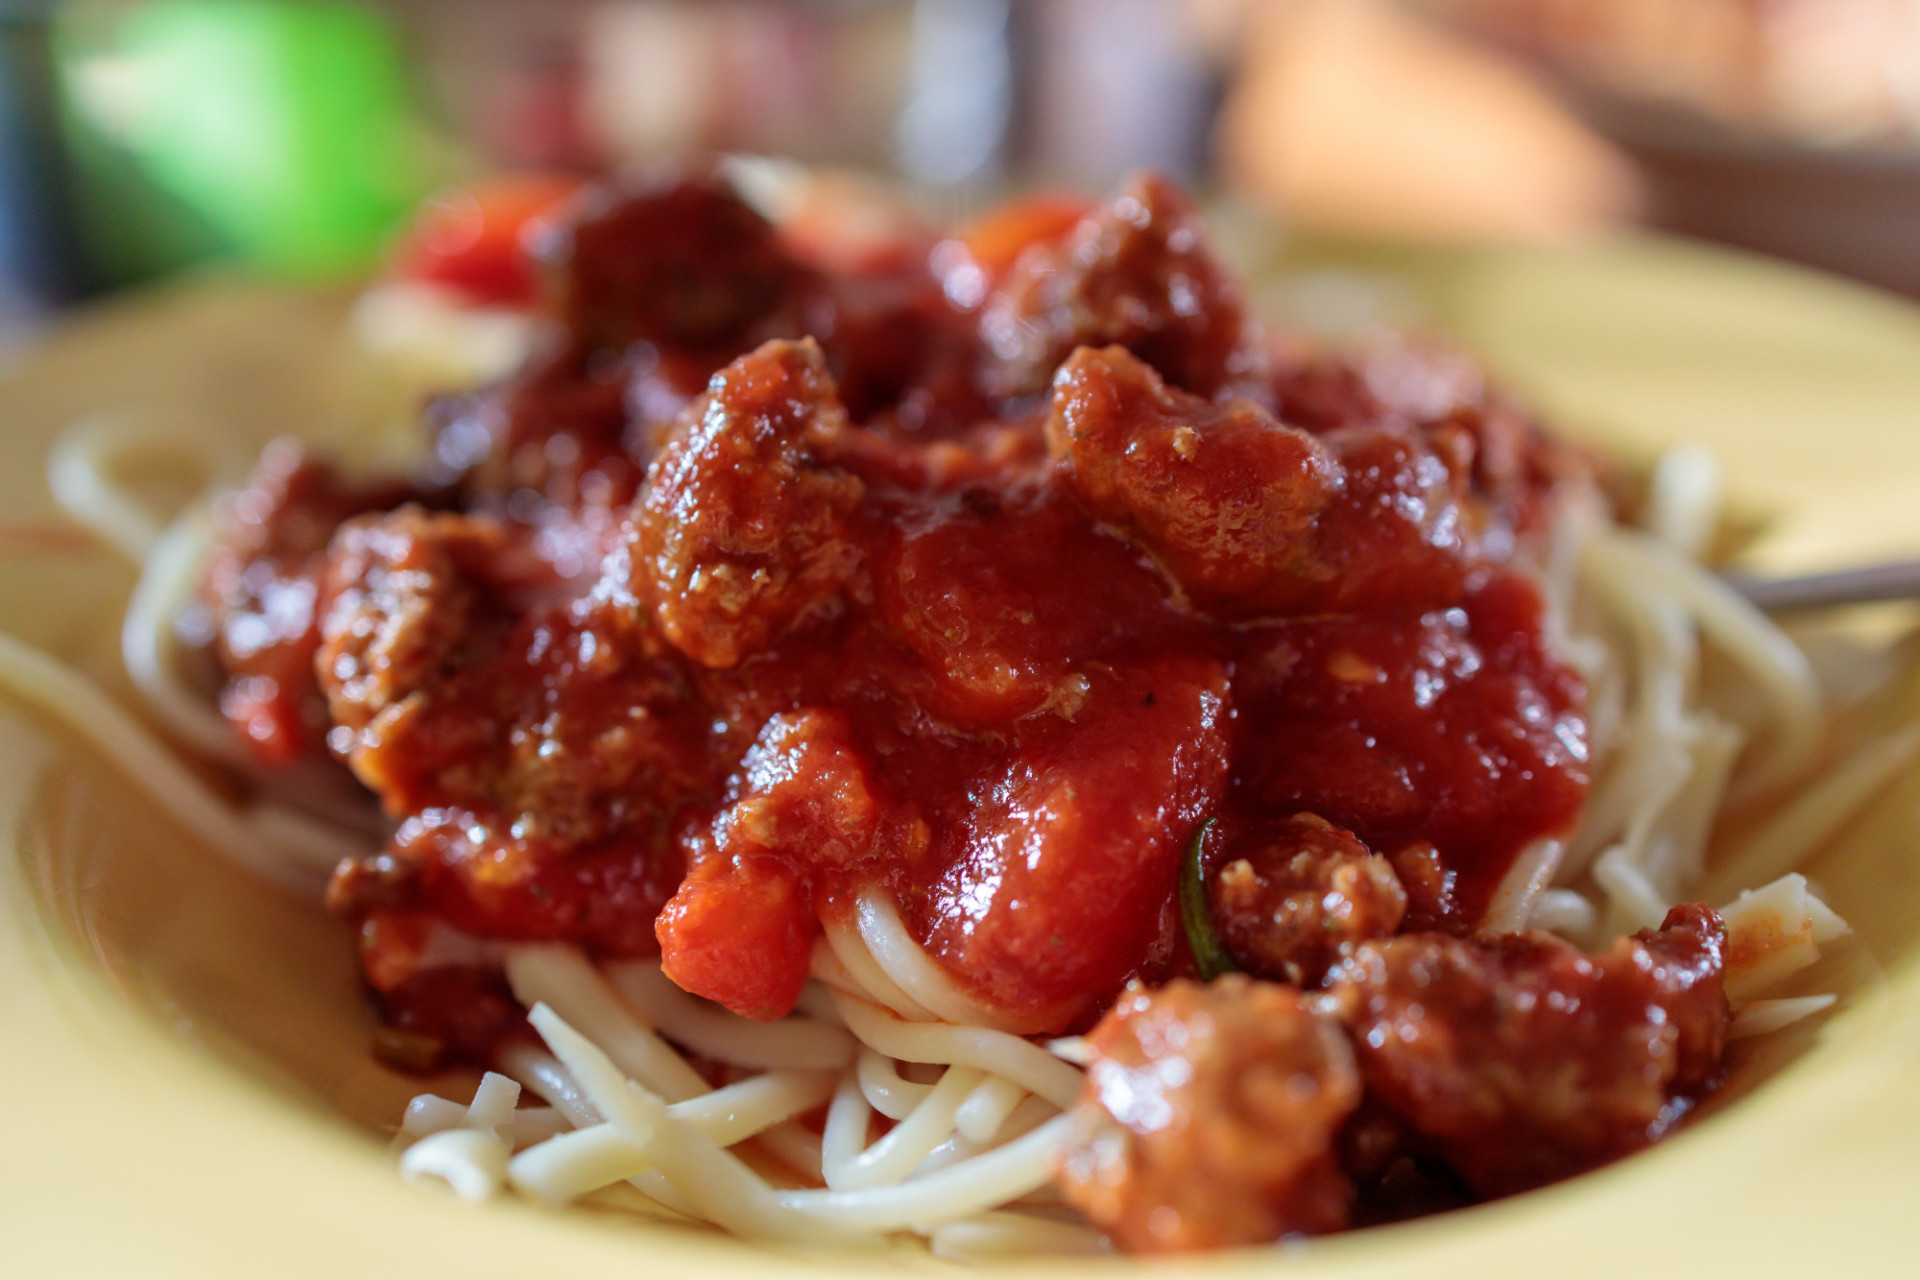 Spaghetti Bolognese on a yellow plate